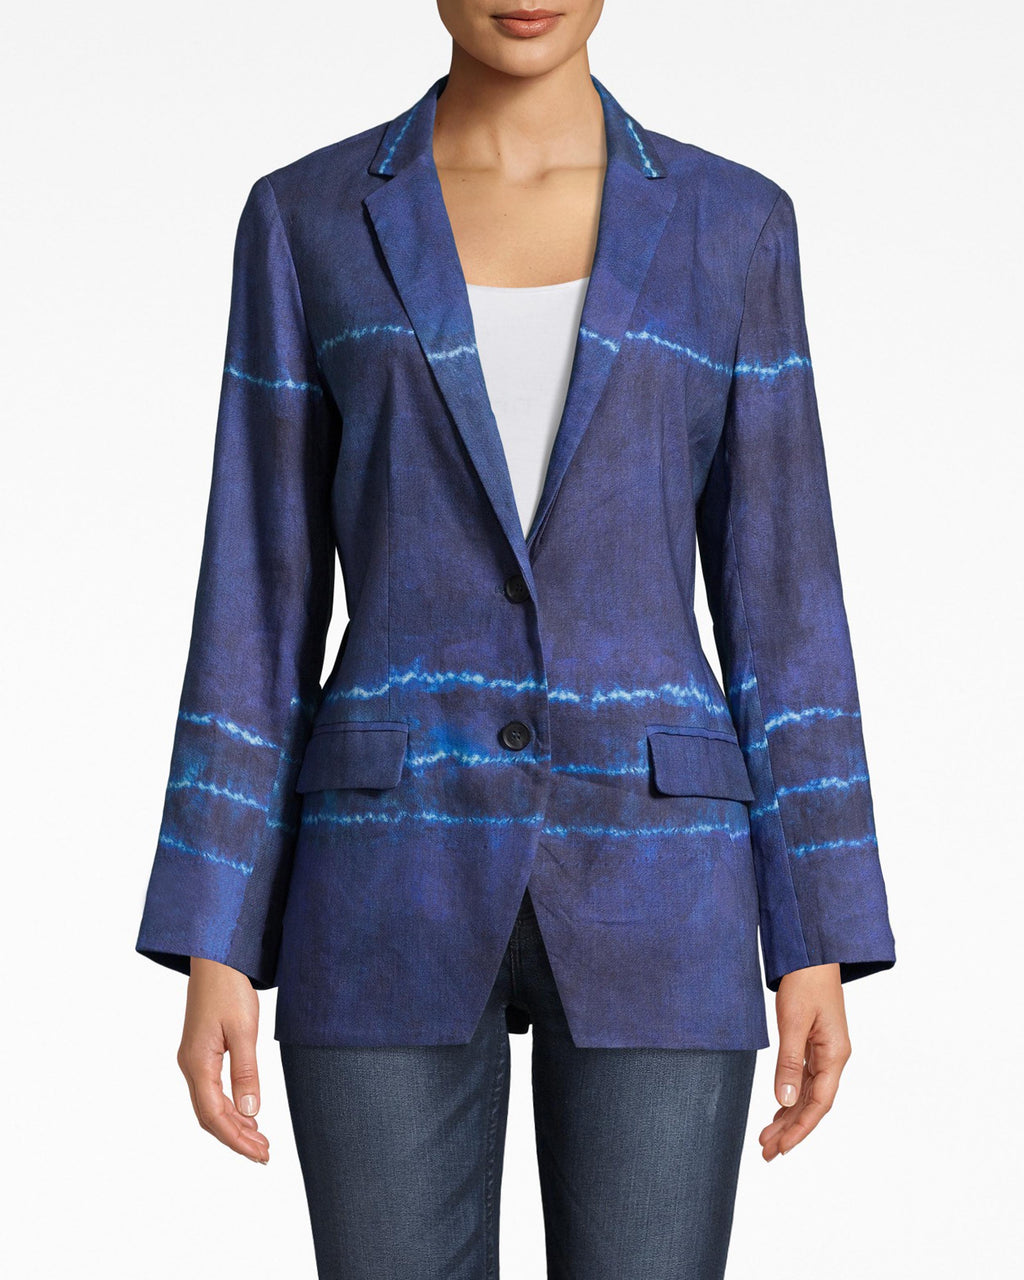 BQ10370 - SHIBORI STRIPE BLAZER - outerwear - blazers - WARMER WEATHER CALLS FOR LIGHTWEIGHT AND EASY PIECES AND THIS BLAZER IS JUST THAT. LAYER OVER A WHITE TEE FOR A CHIC OFFICE OUTFIT OR PAIR WITH THE SHIBORI STRIPED PENCIL SKIRT FOR A WHOLE LOOK.